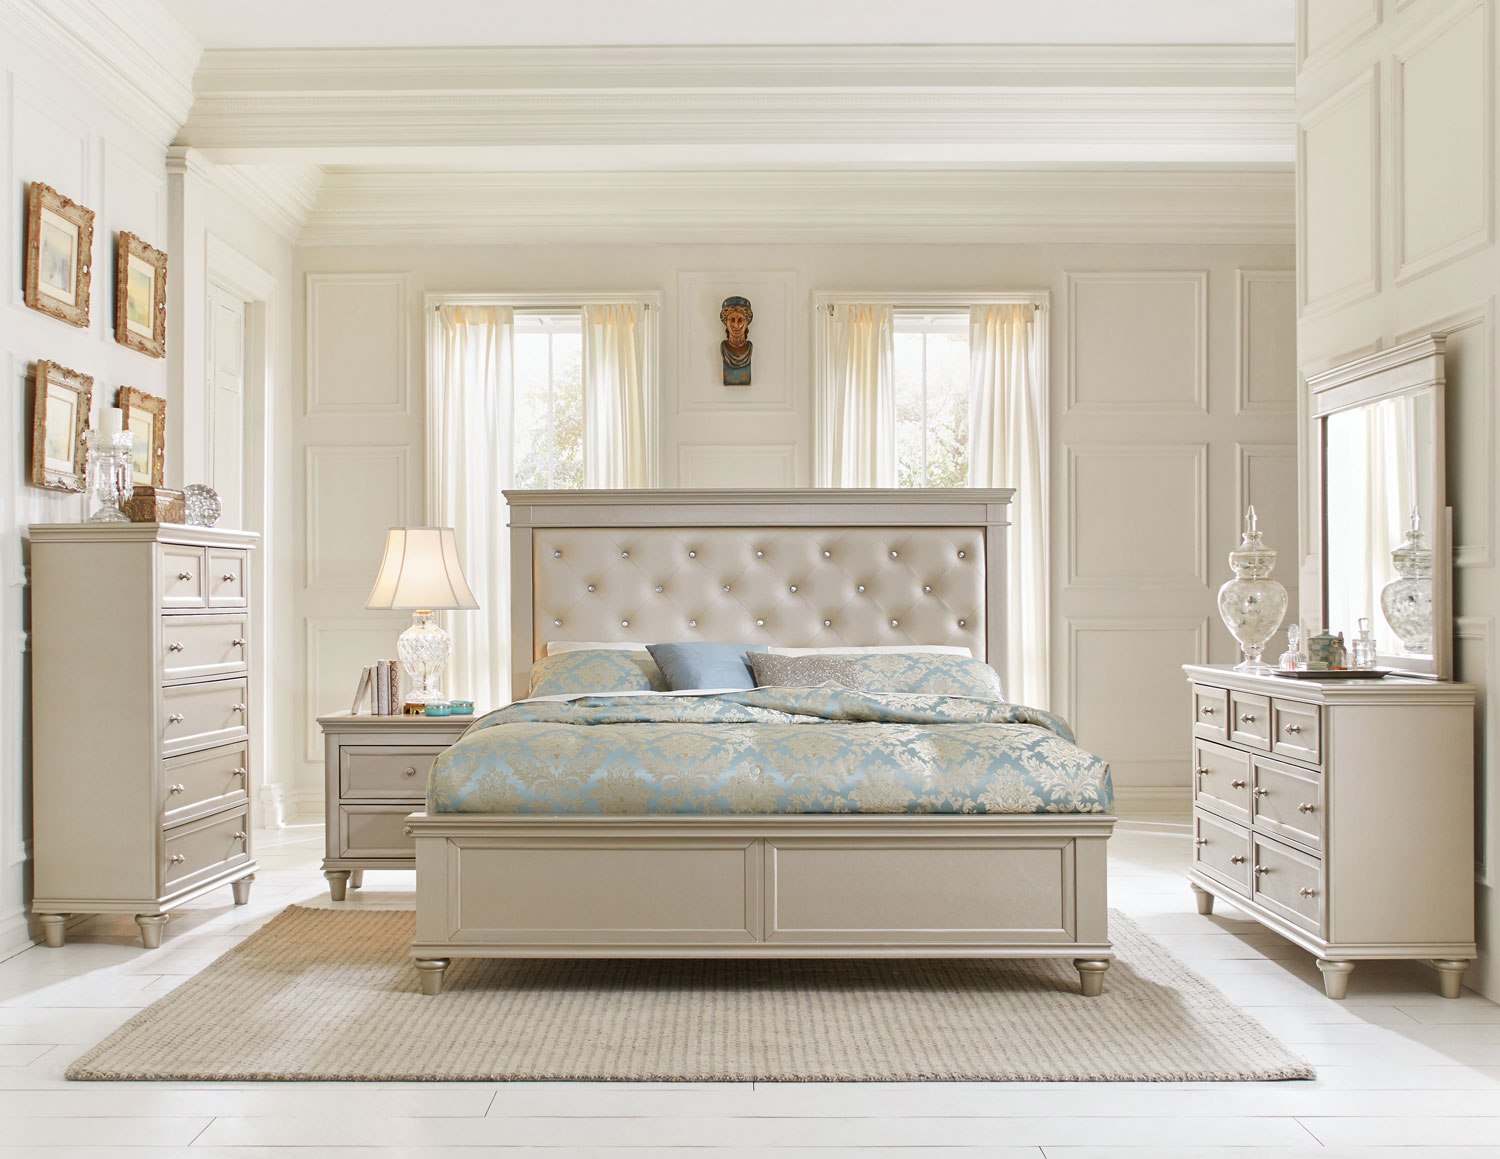 Homelegance Celandine Upholstered Bedroom Set - Silver